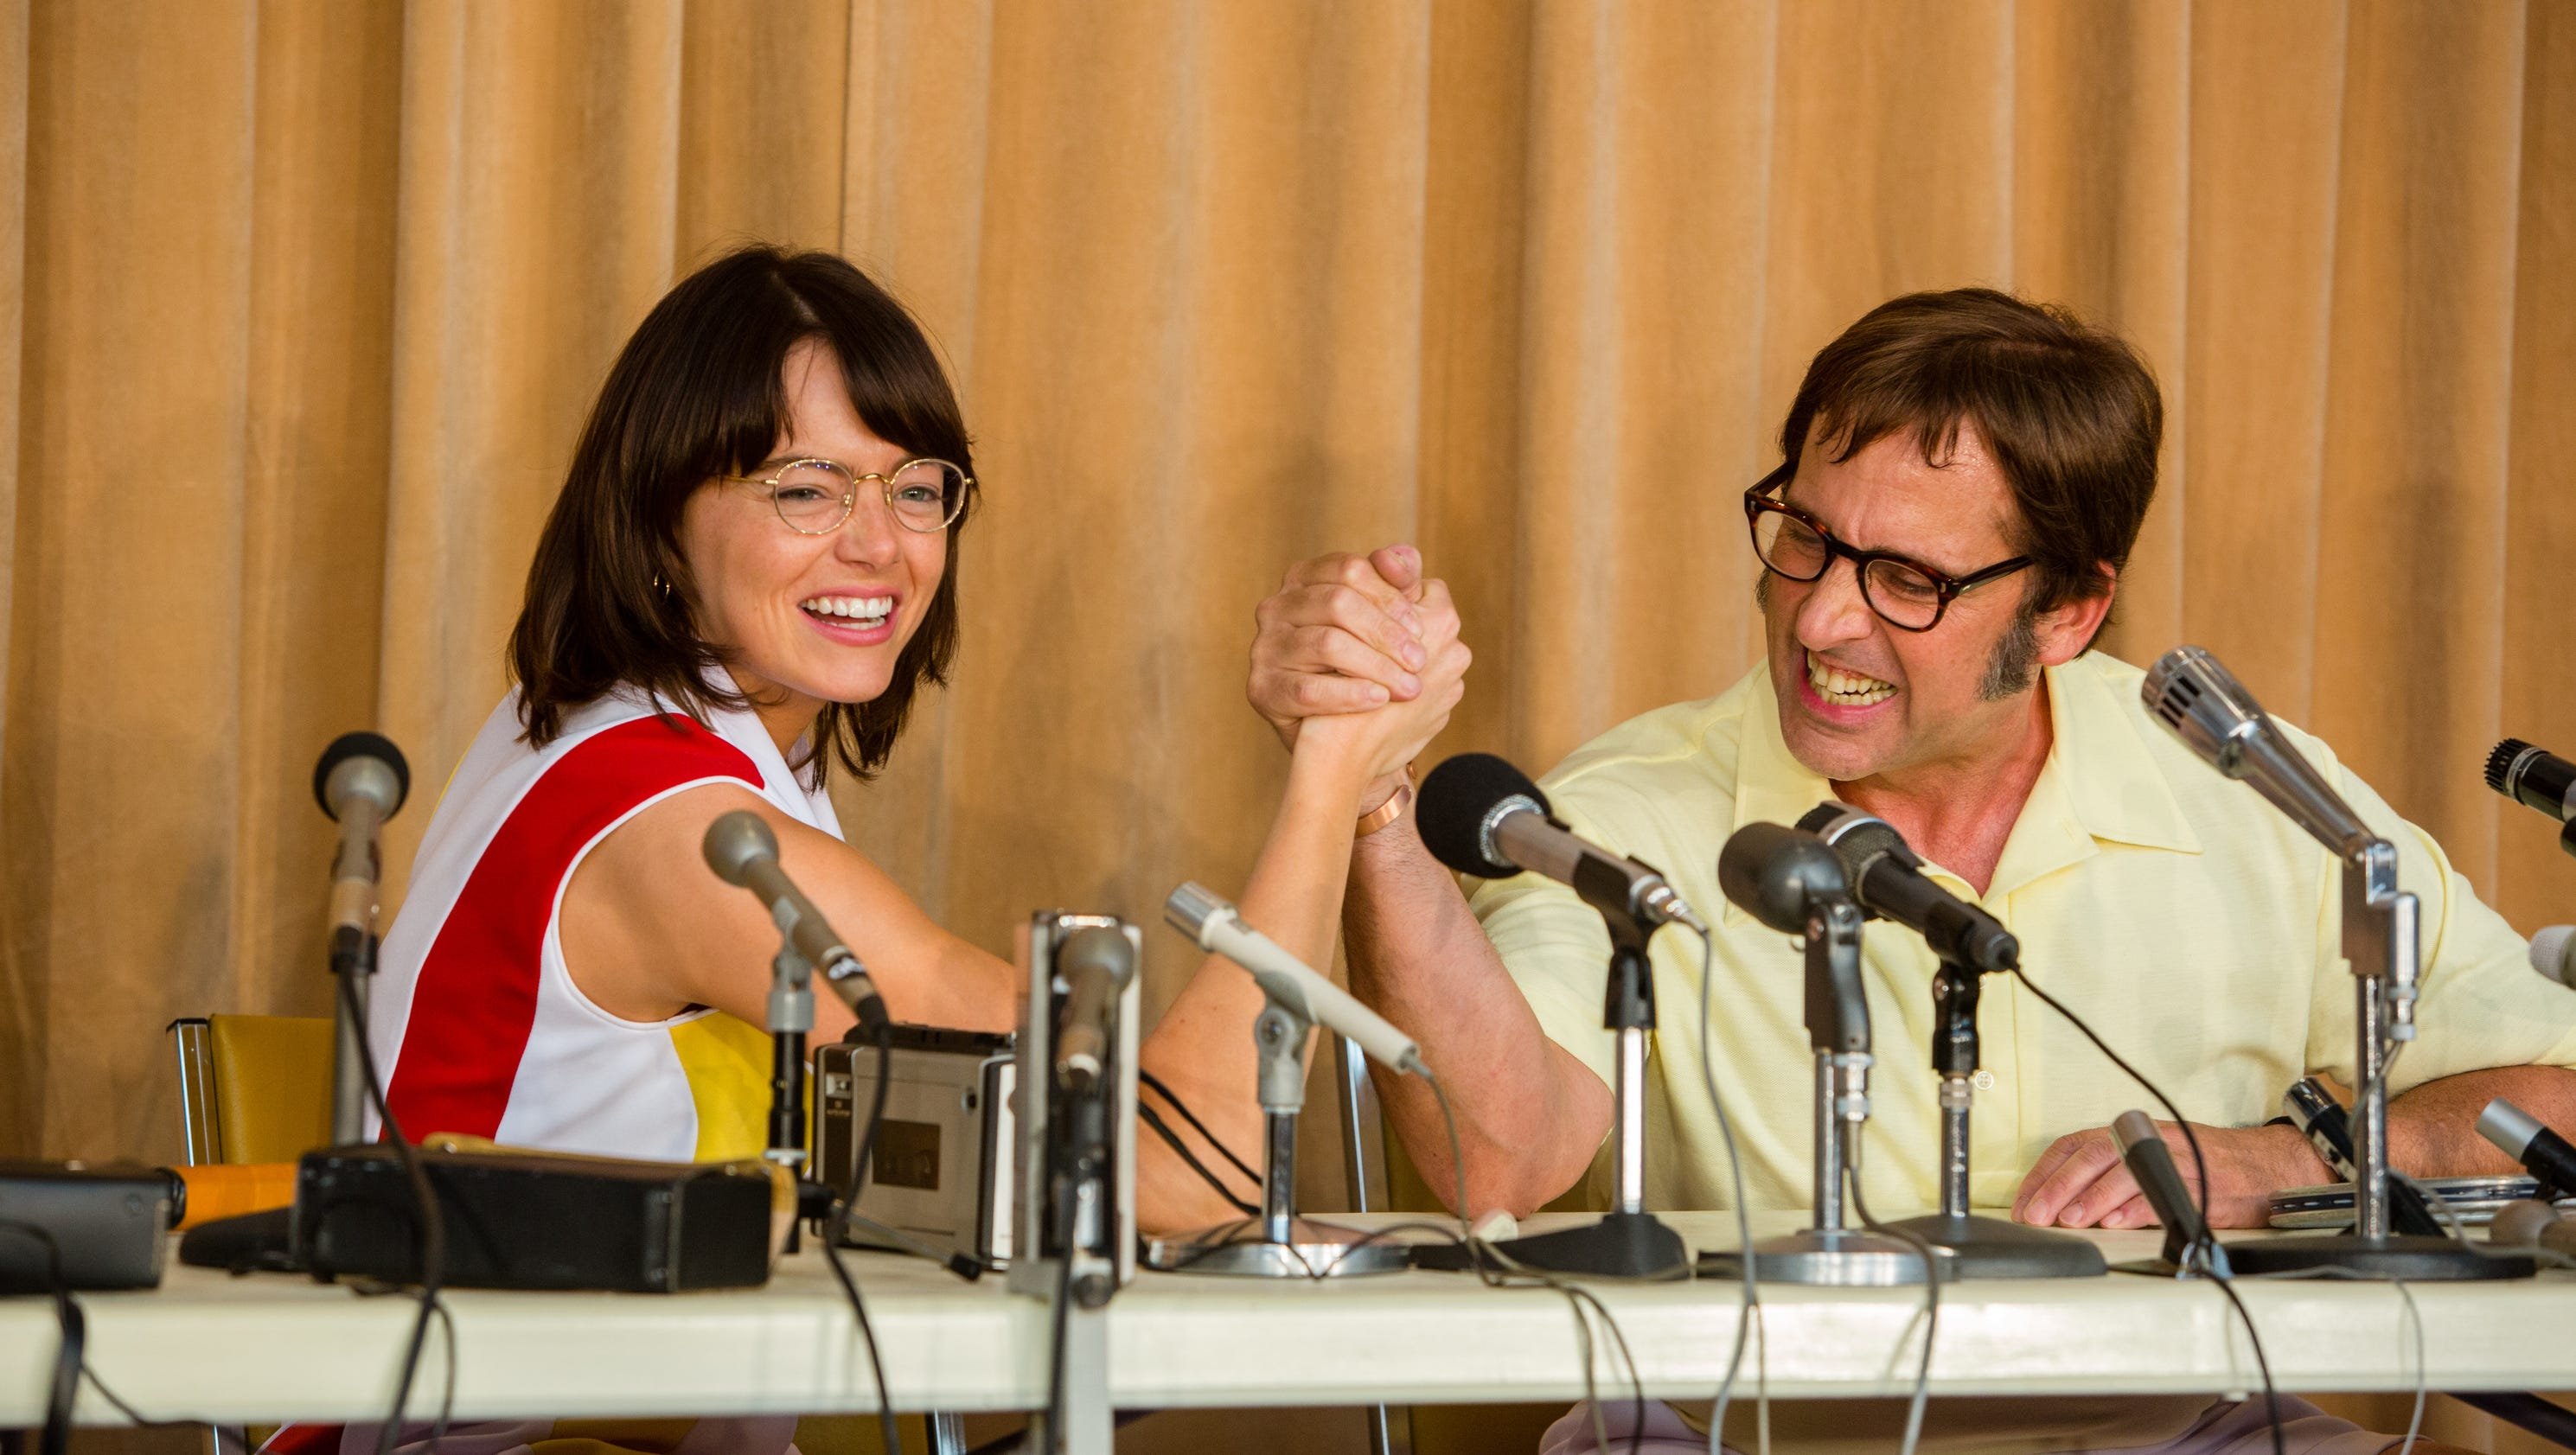 'Battle of the Sexes': How accurate is the movie about the infamous tennis match?